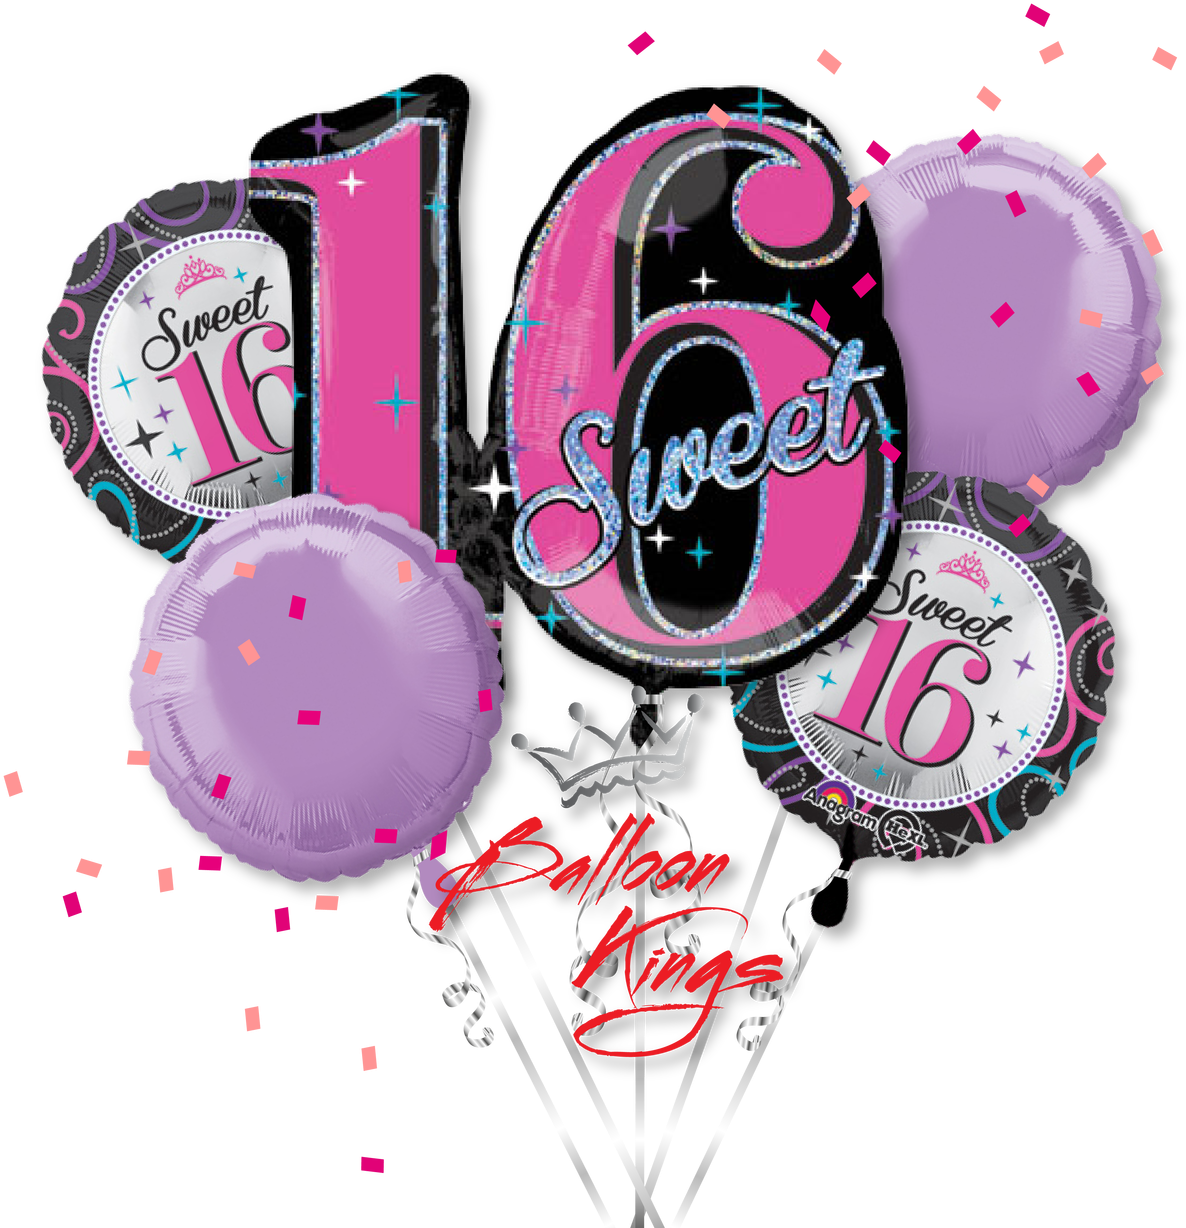 Download Hd Sweet 16 Bouquet Sweet 16 Balloon Bouquet Each Transparent Png Image Nicepng Com